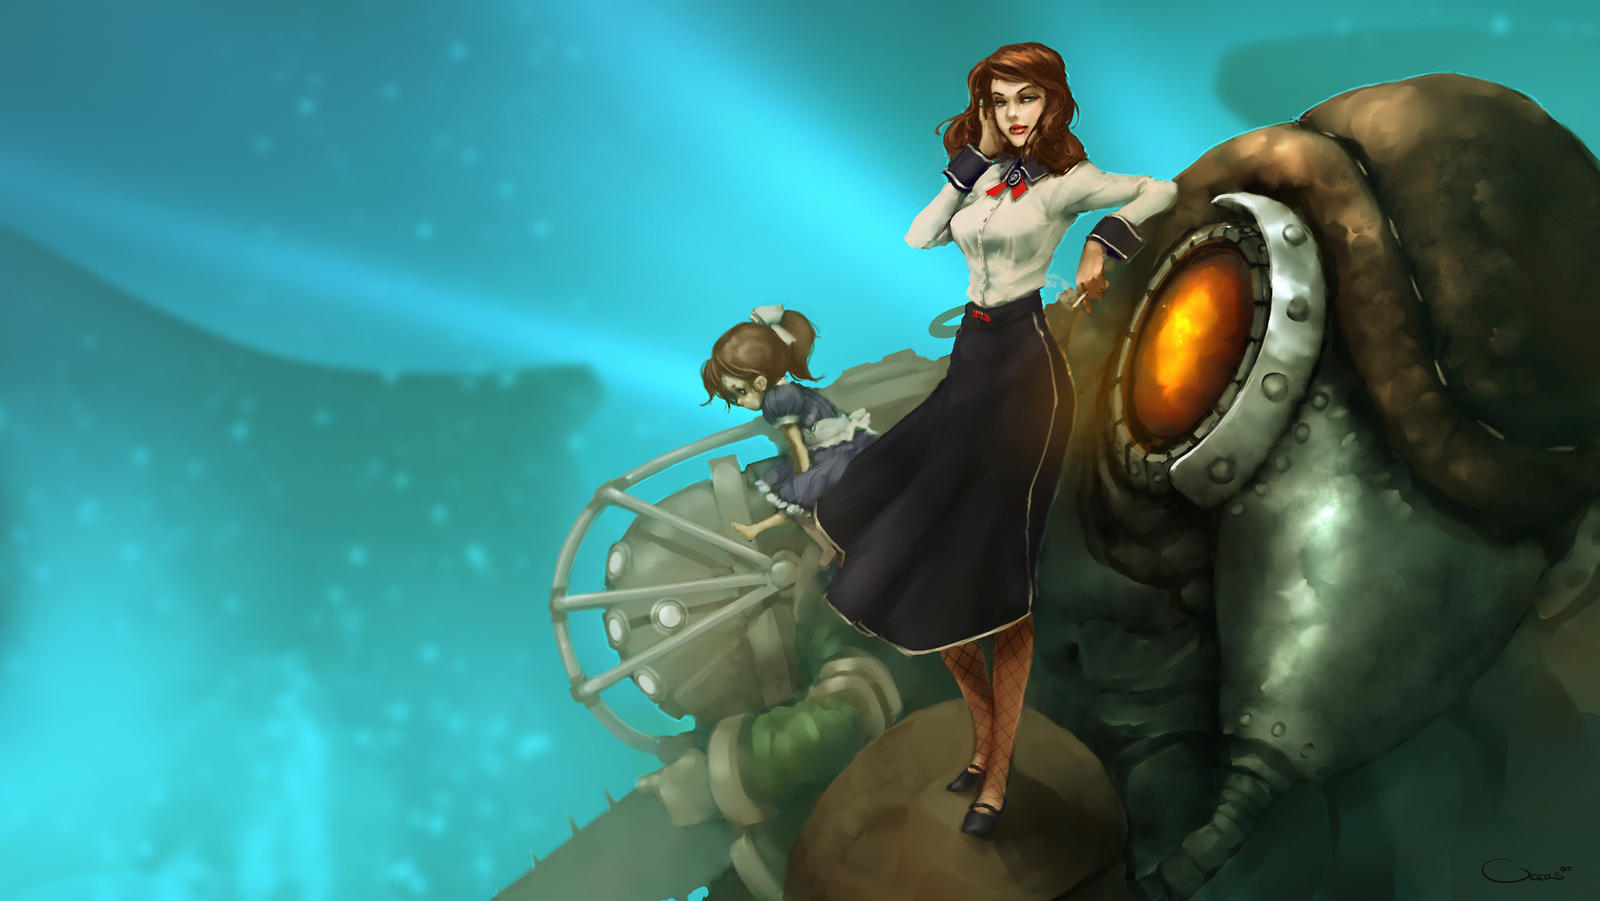 Bioshock Infinite Burial at Sea Wallpaper by DarrenGeers